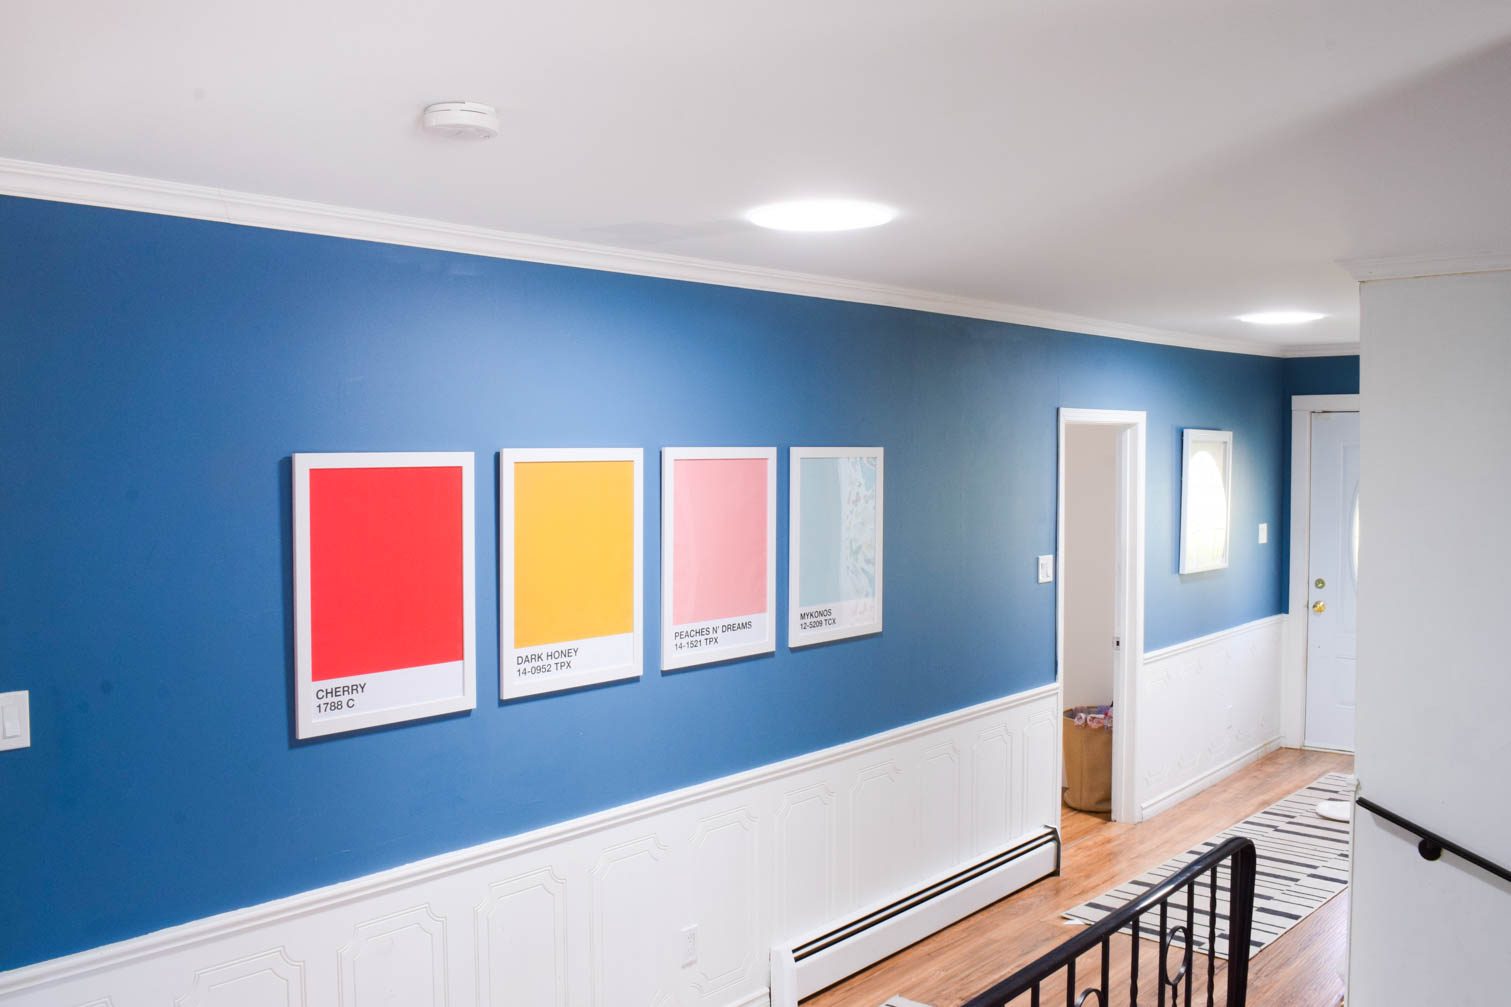 We've added 3 VELUX SUN TUNNEL Skylights and answer all your questions about the process, cost, and maintenance! Hint: it's more affordable and easier than you'd think.